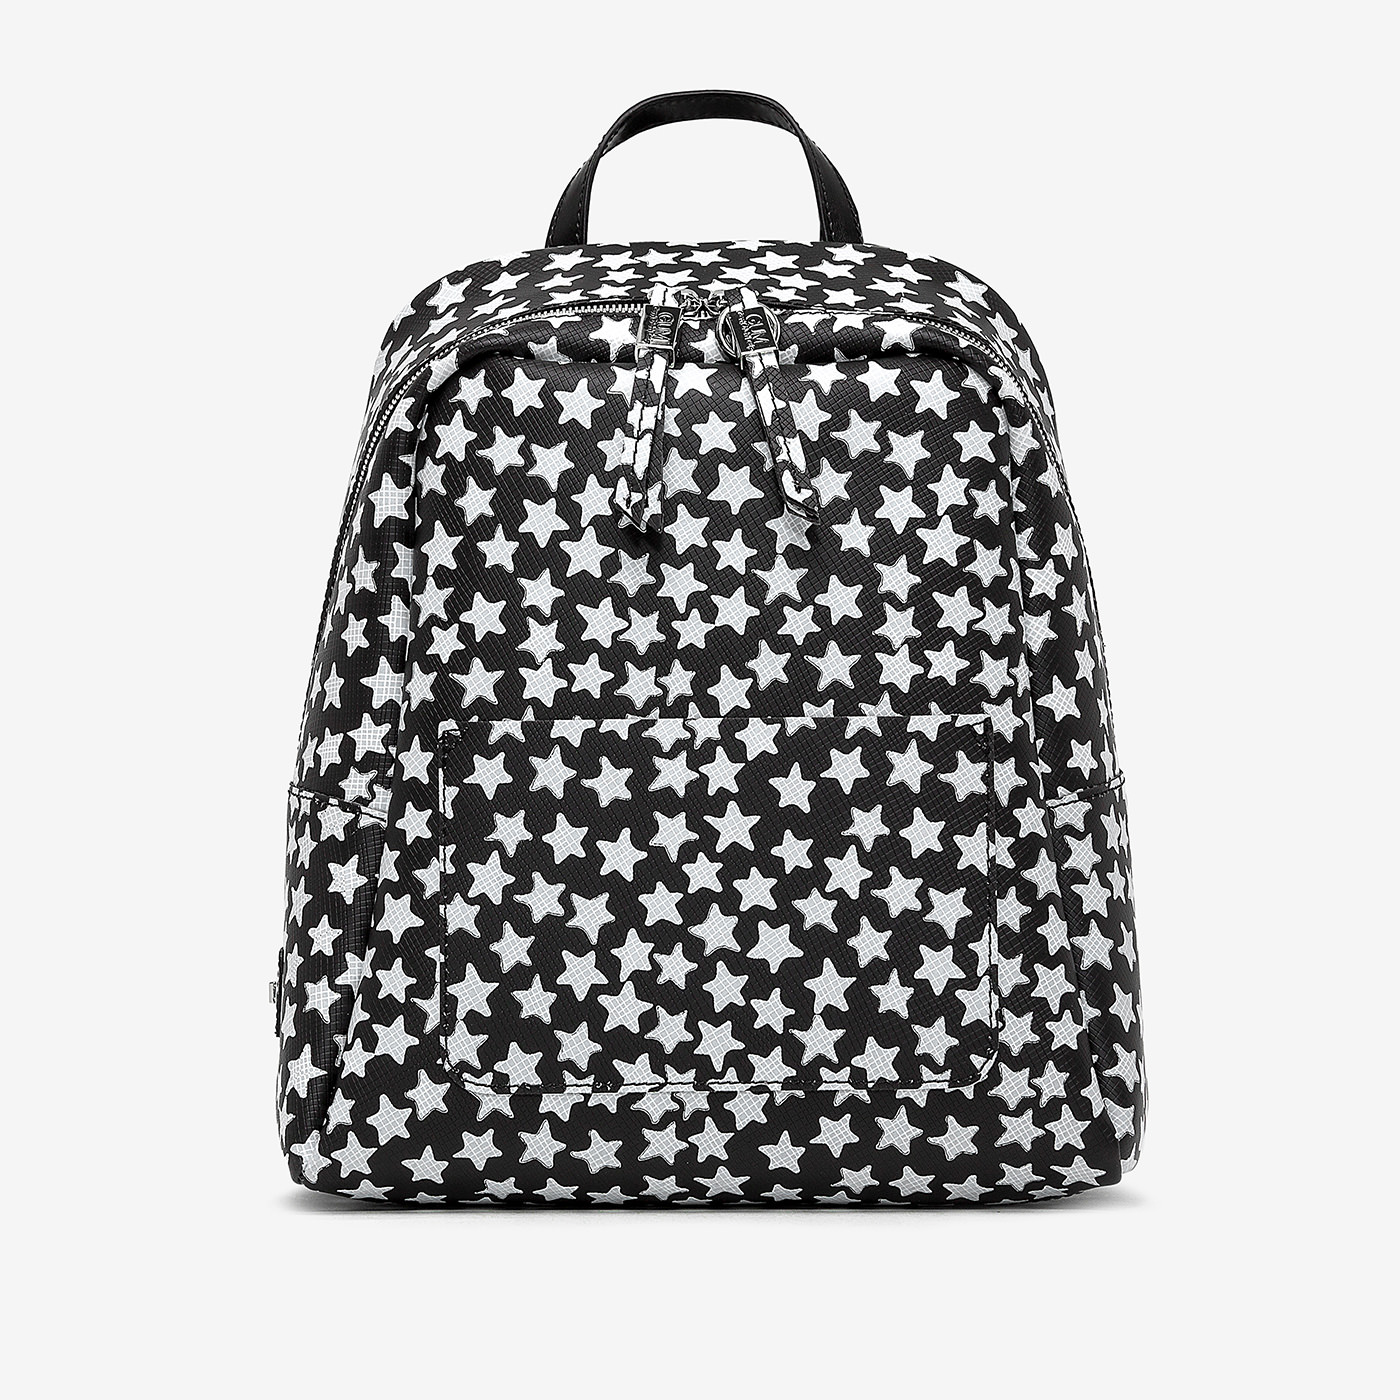 GUM: NINE BACKPACK WITH STARRY PATTERN